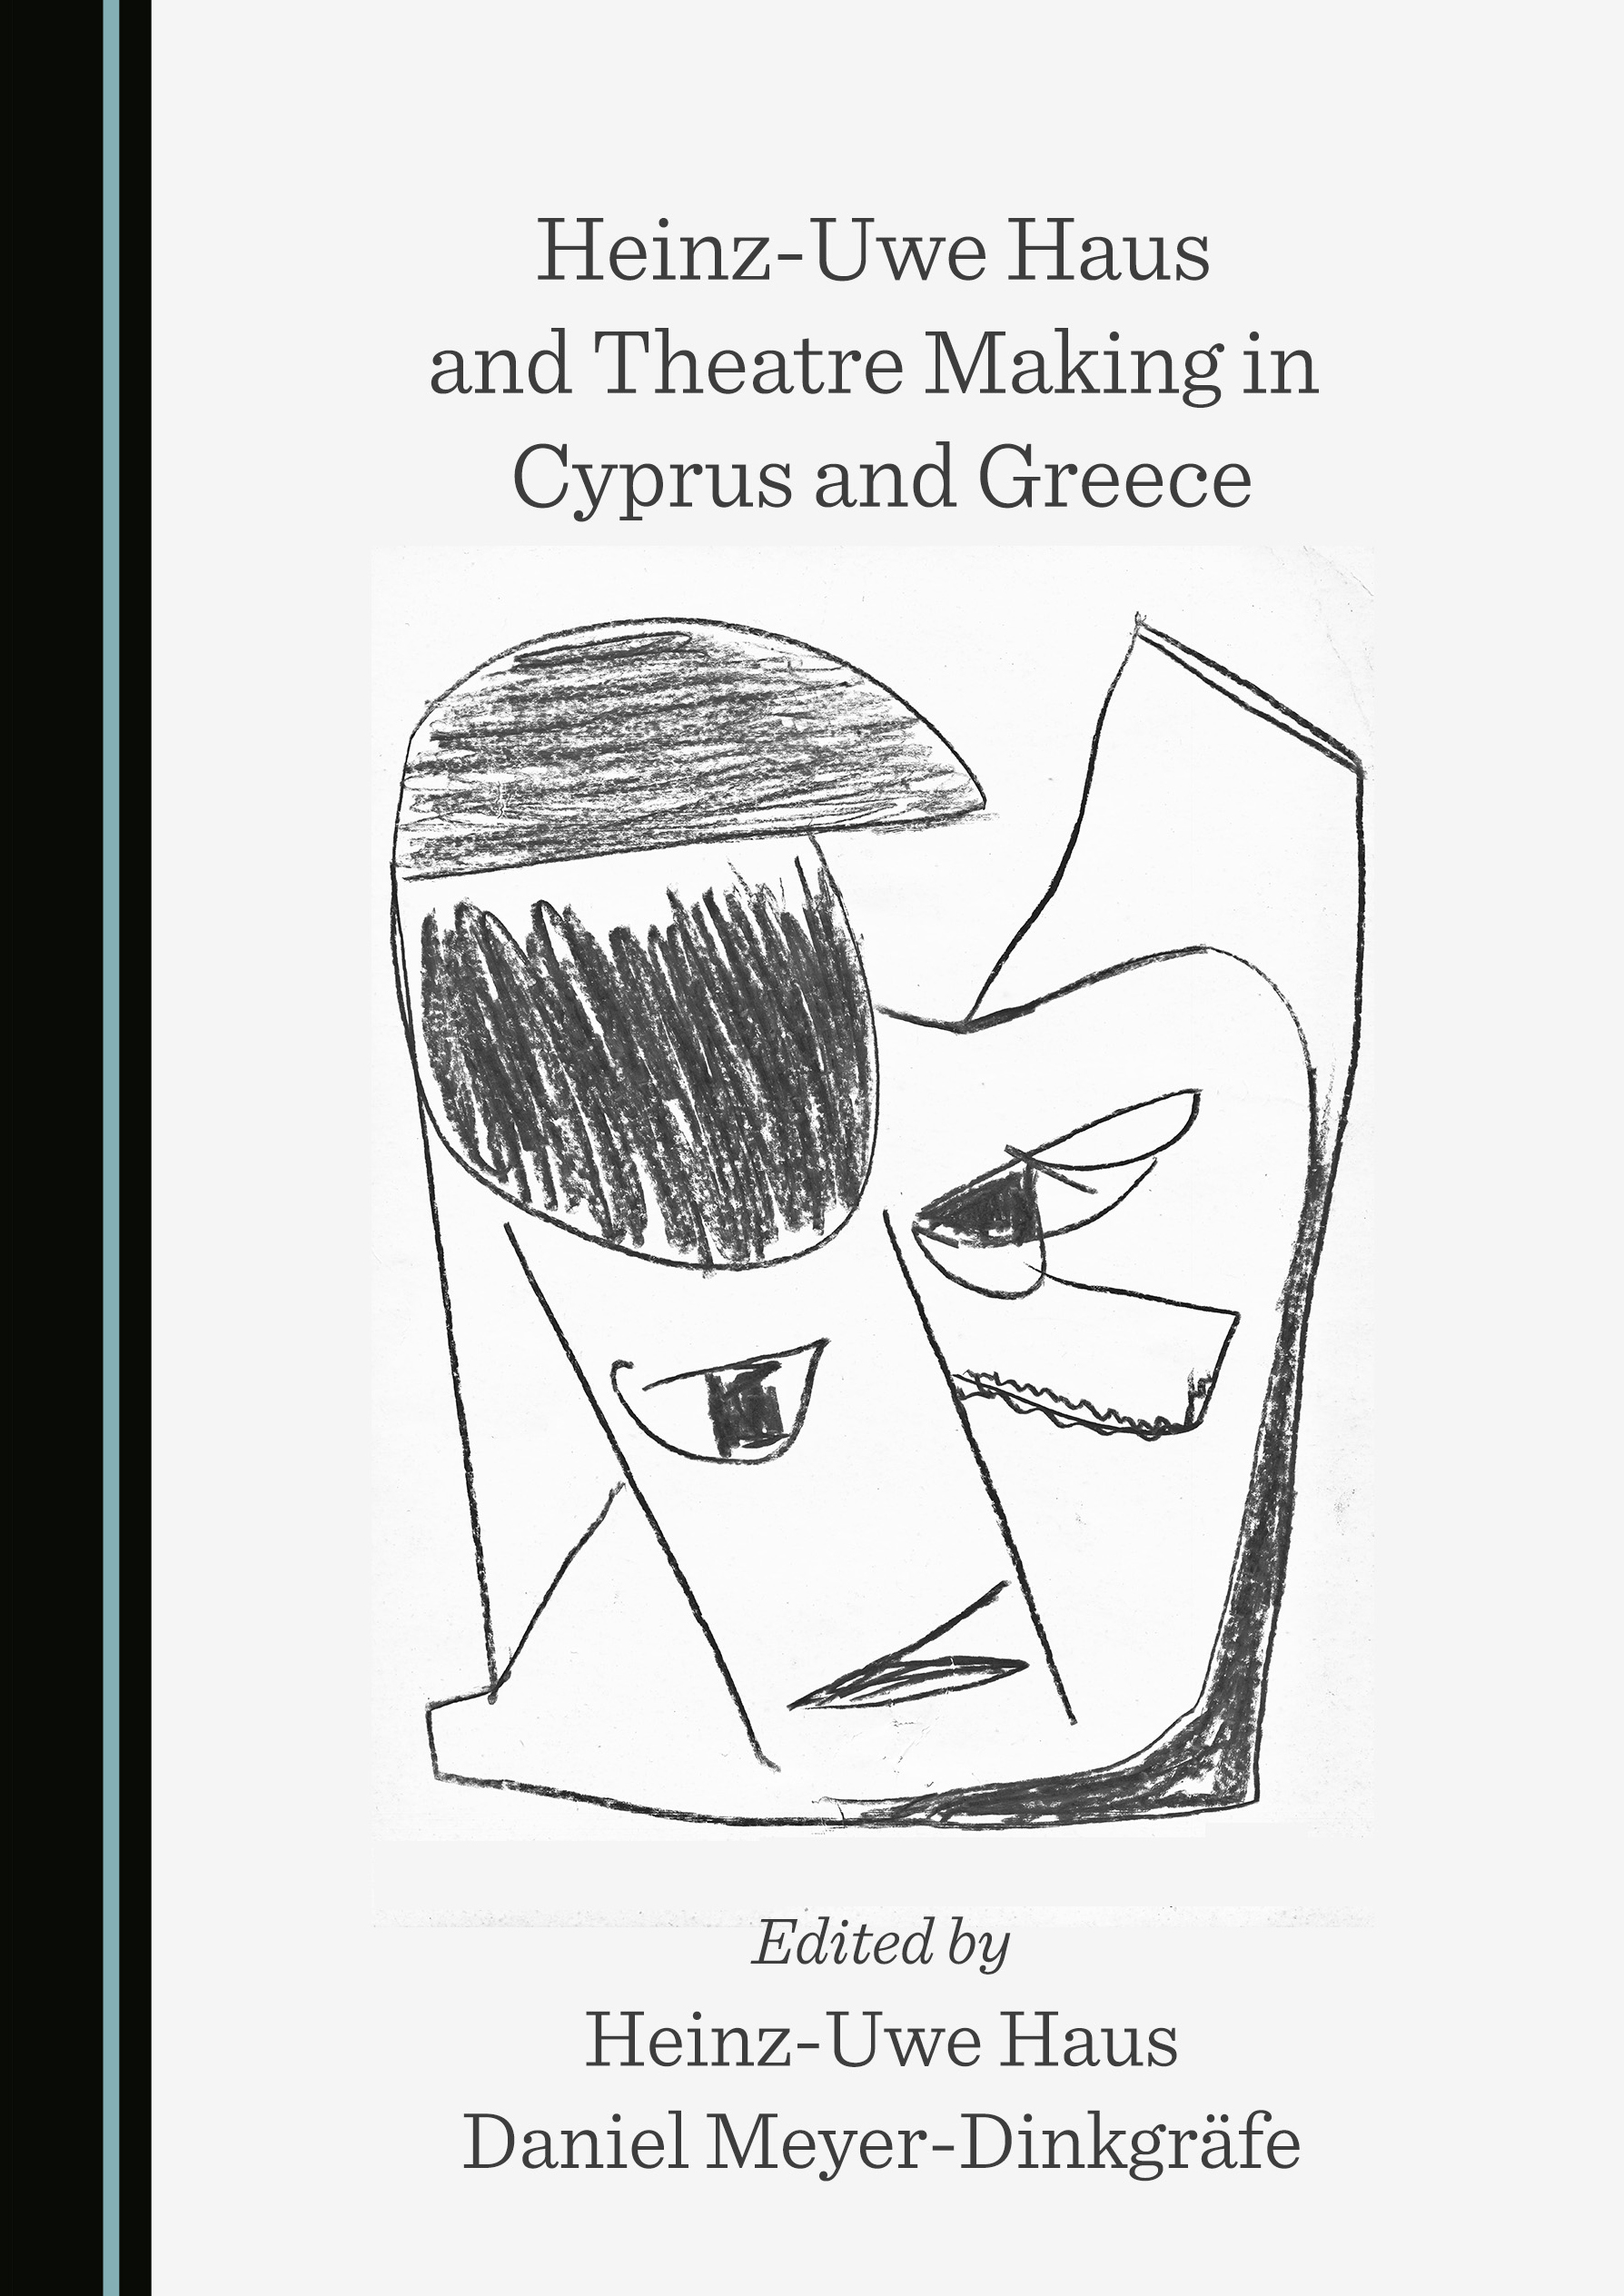 Heinz-Uwe Haus and Theatre Making in Cyprus and Greece